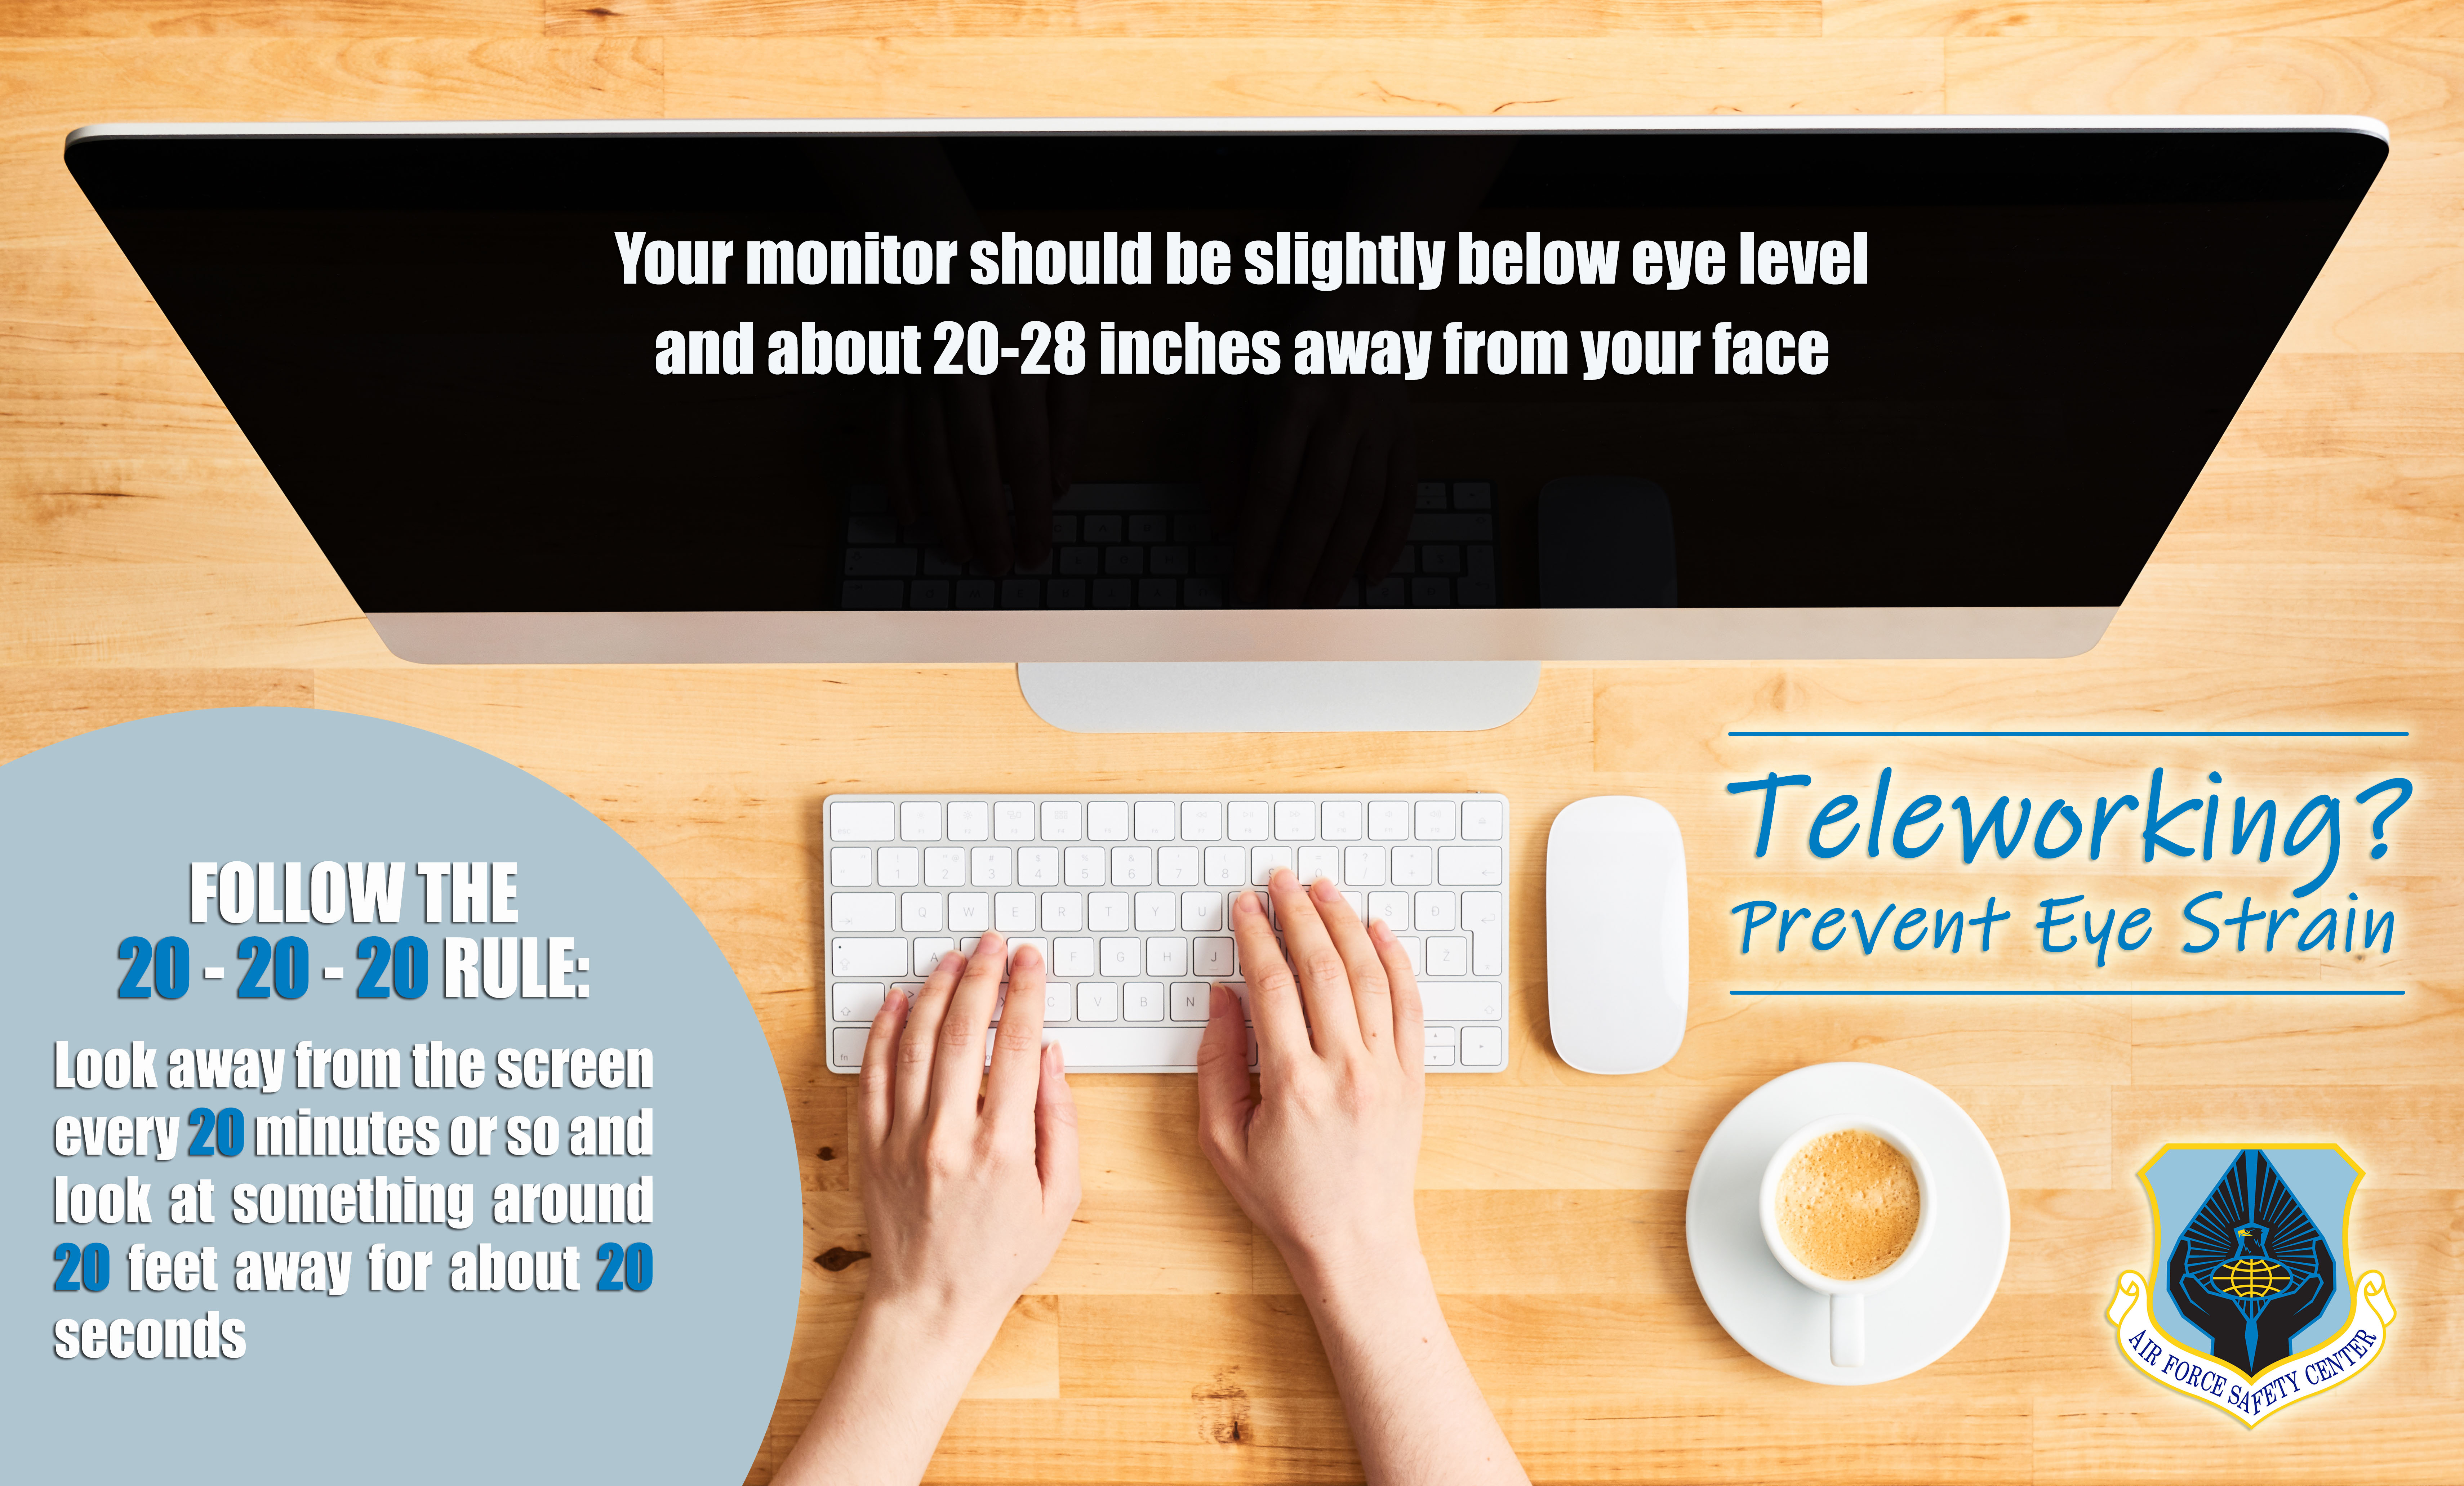 Teleworking - Prevent eye strain poster